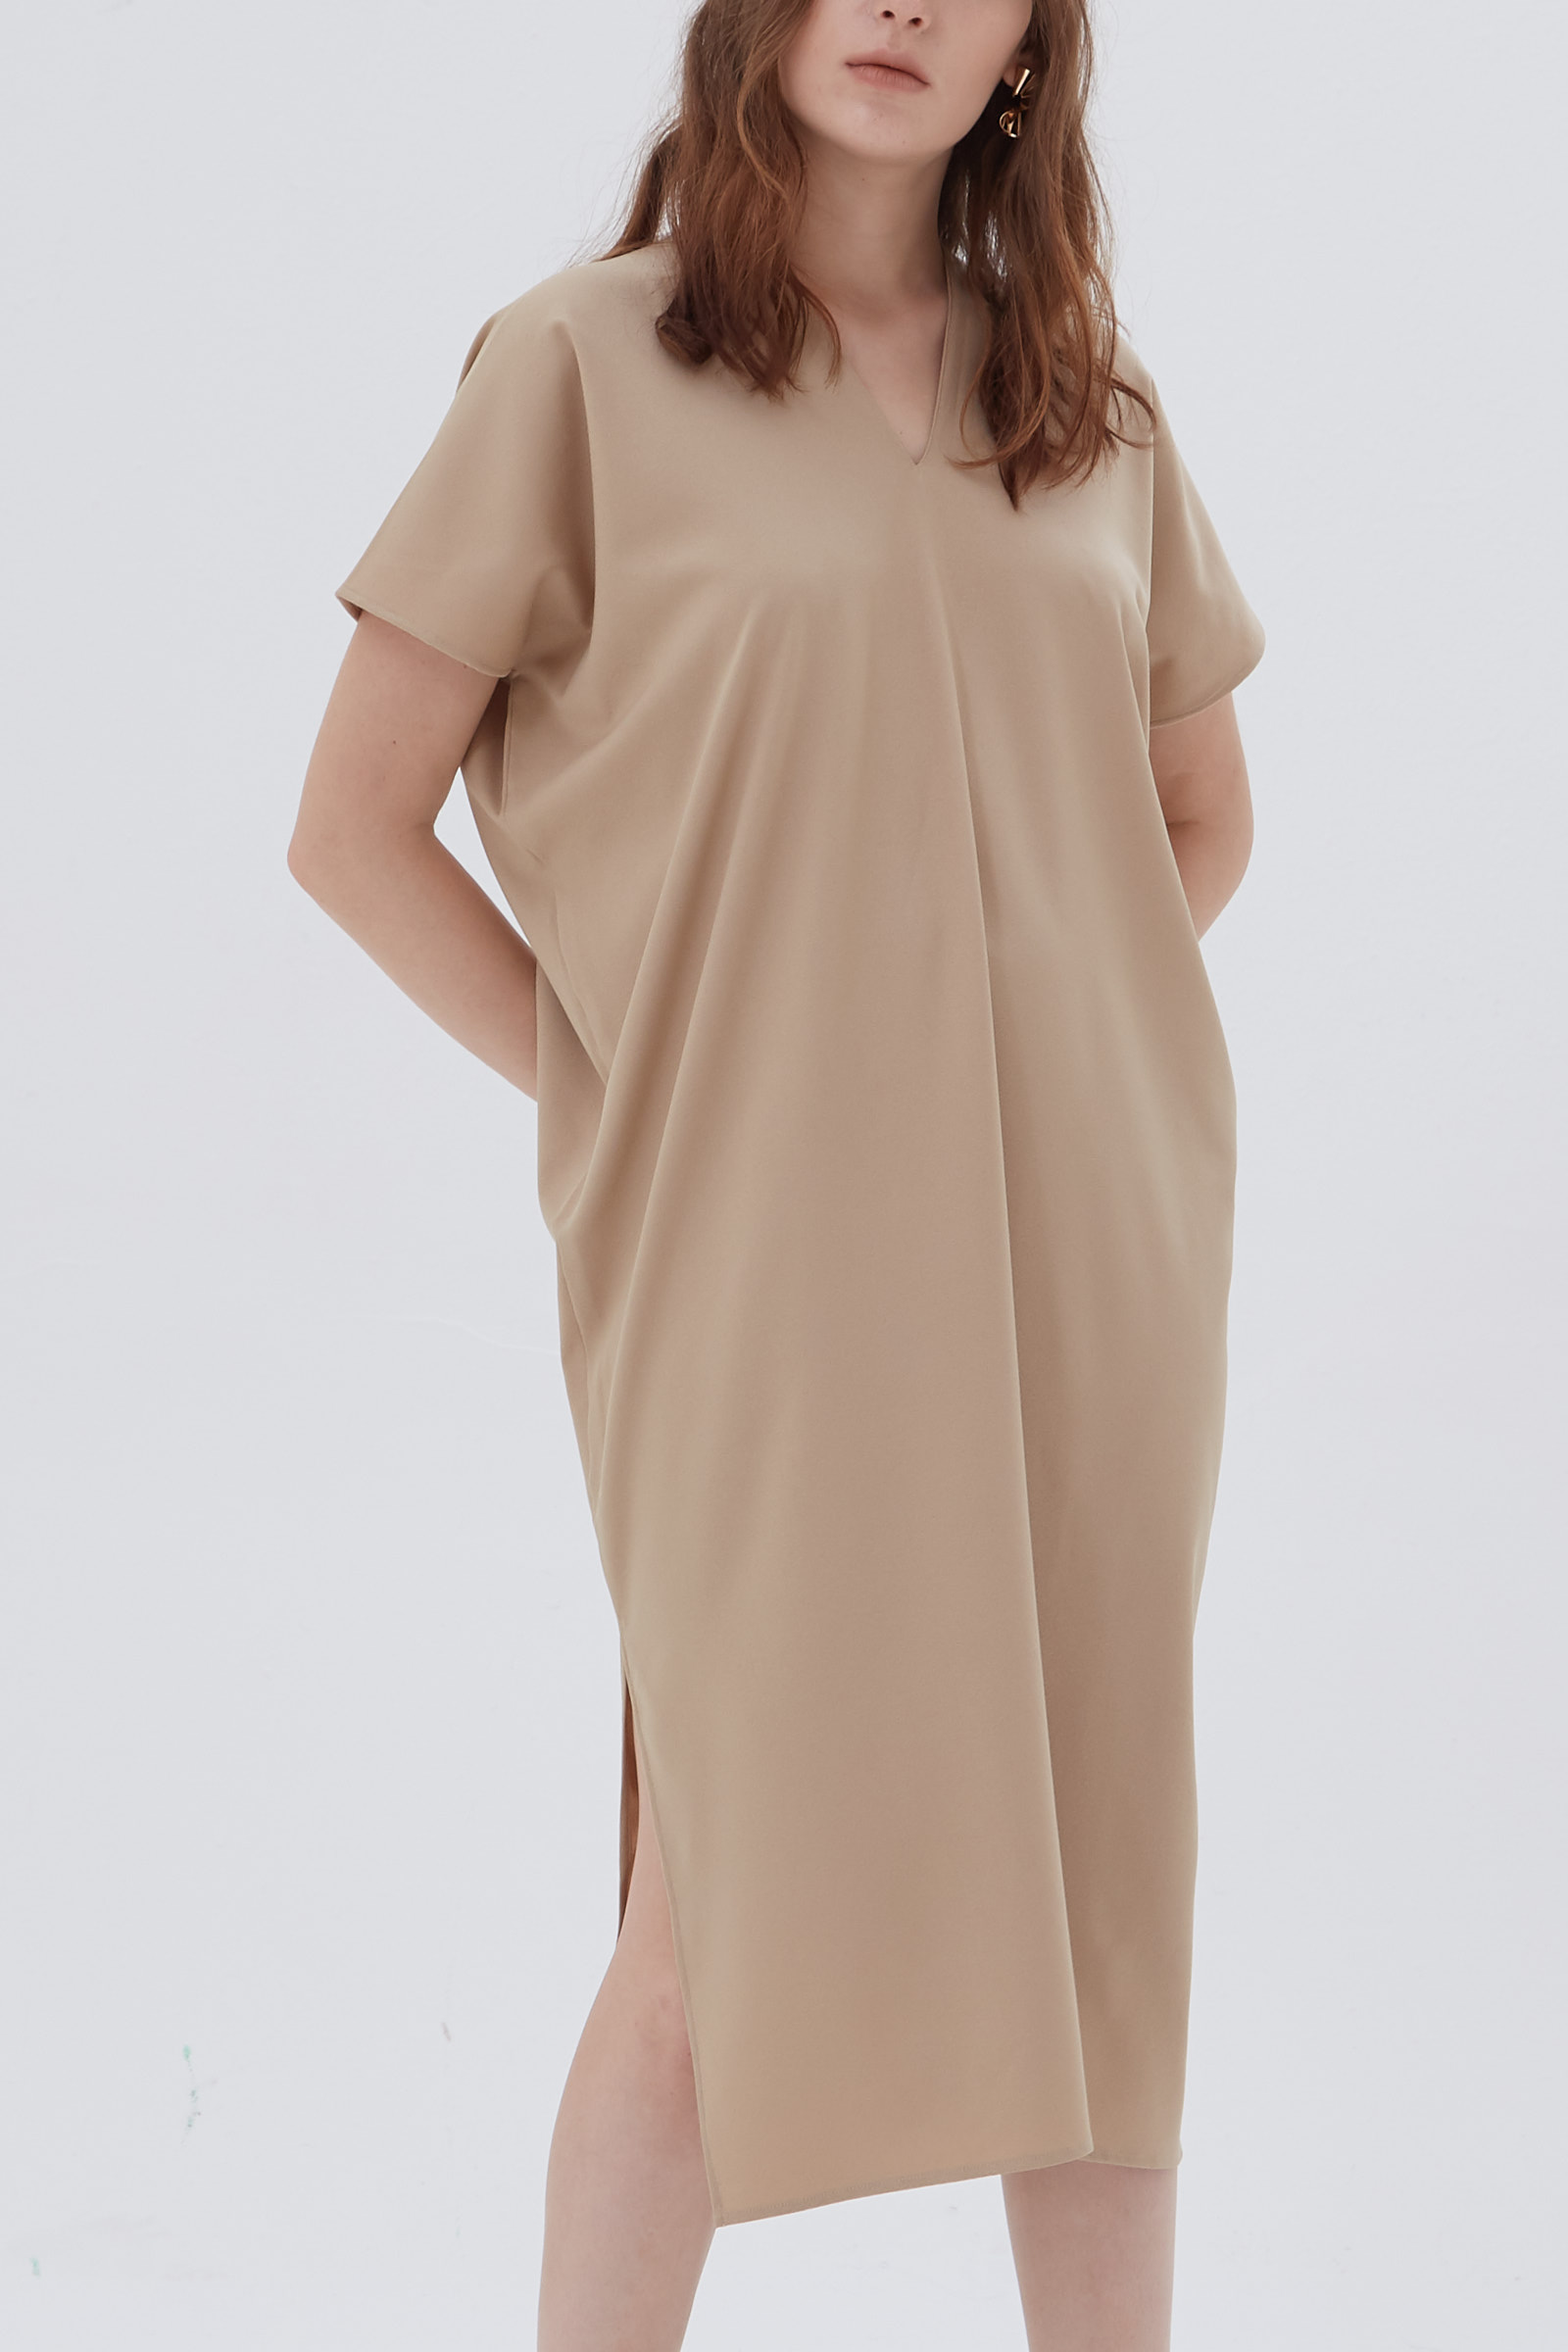 Shopatvelvet Elevation Dress Nude